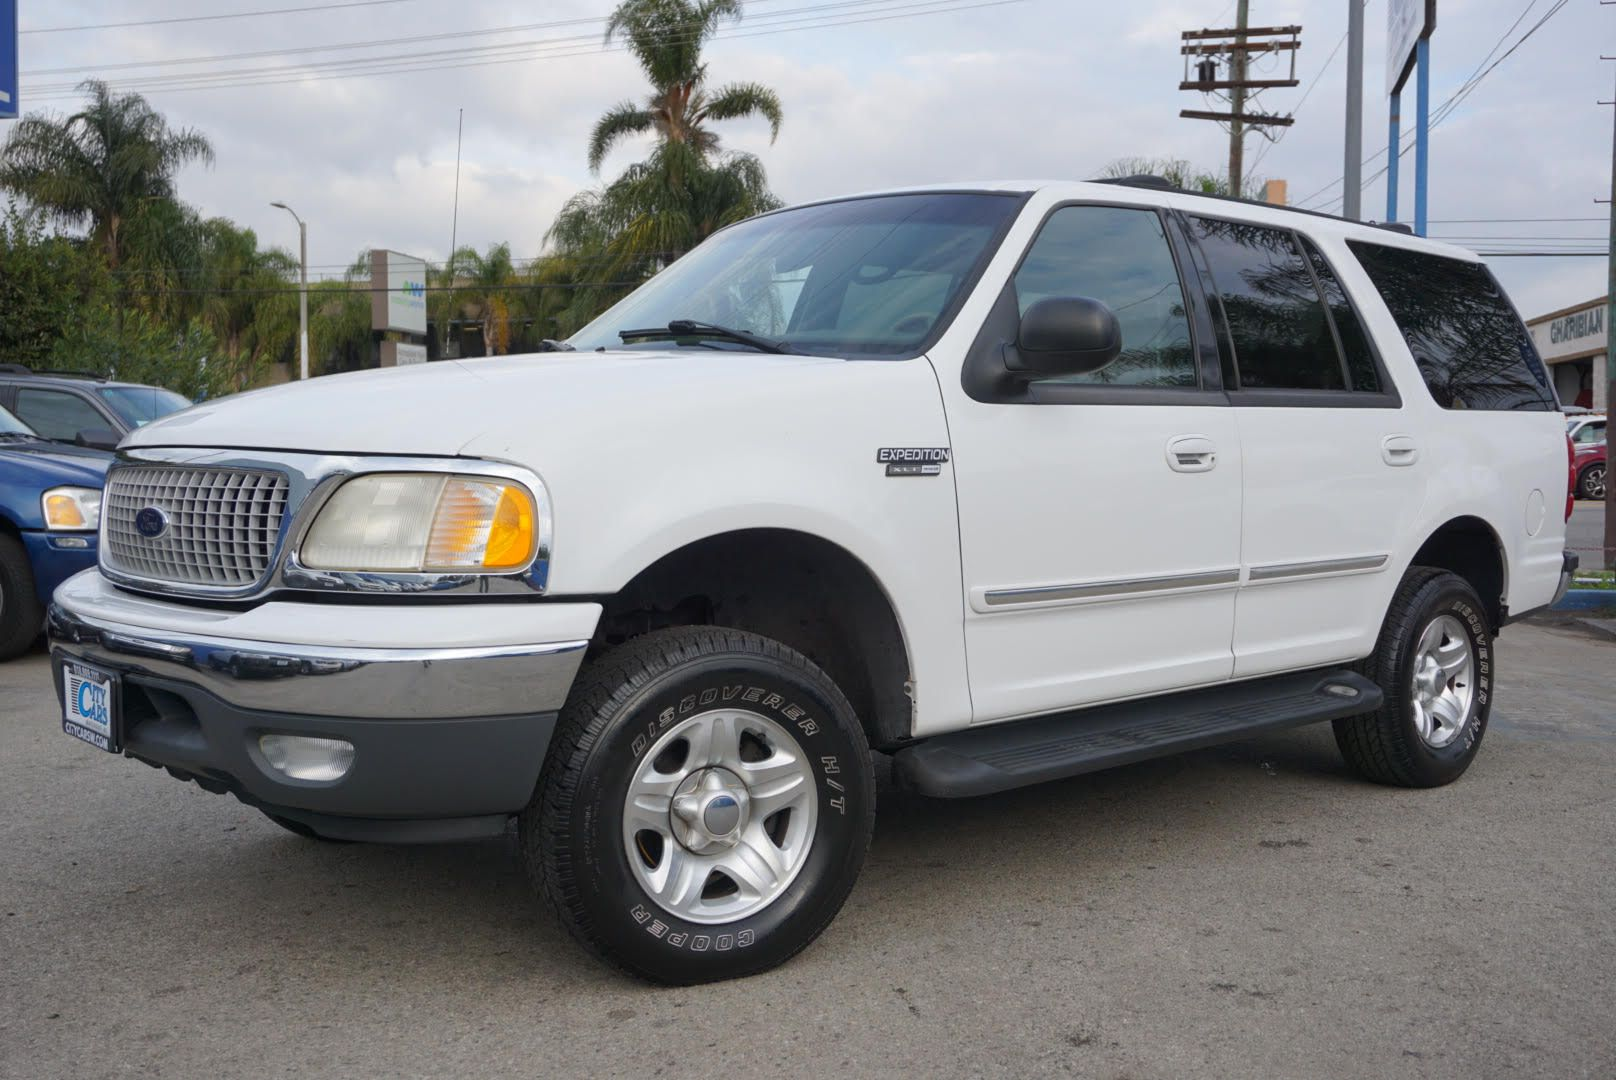 used 1999 ford expedition eddie bauer at city cars warehouse inc used 1999 ford expedition eddie bauer